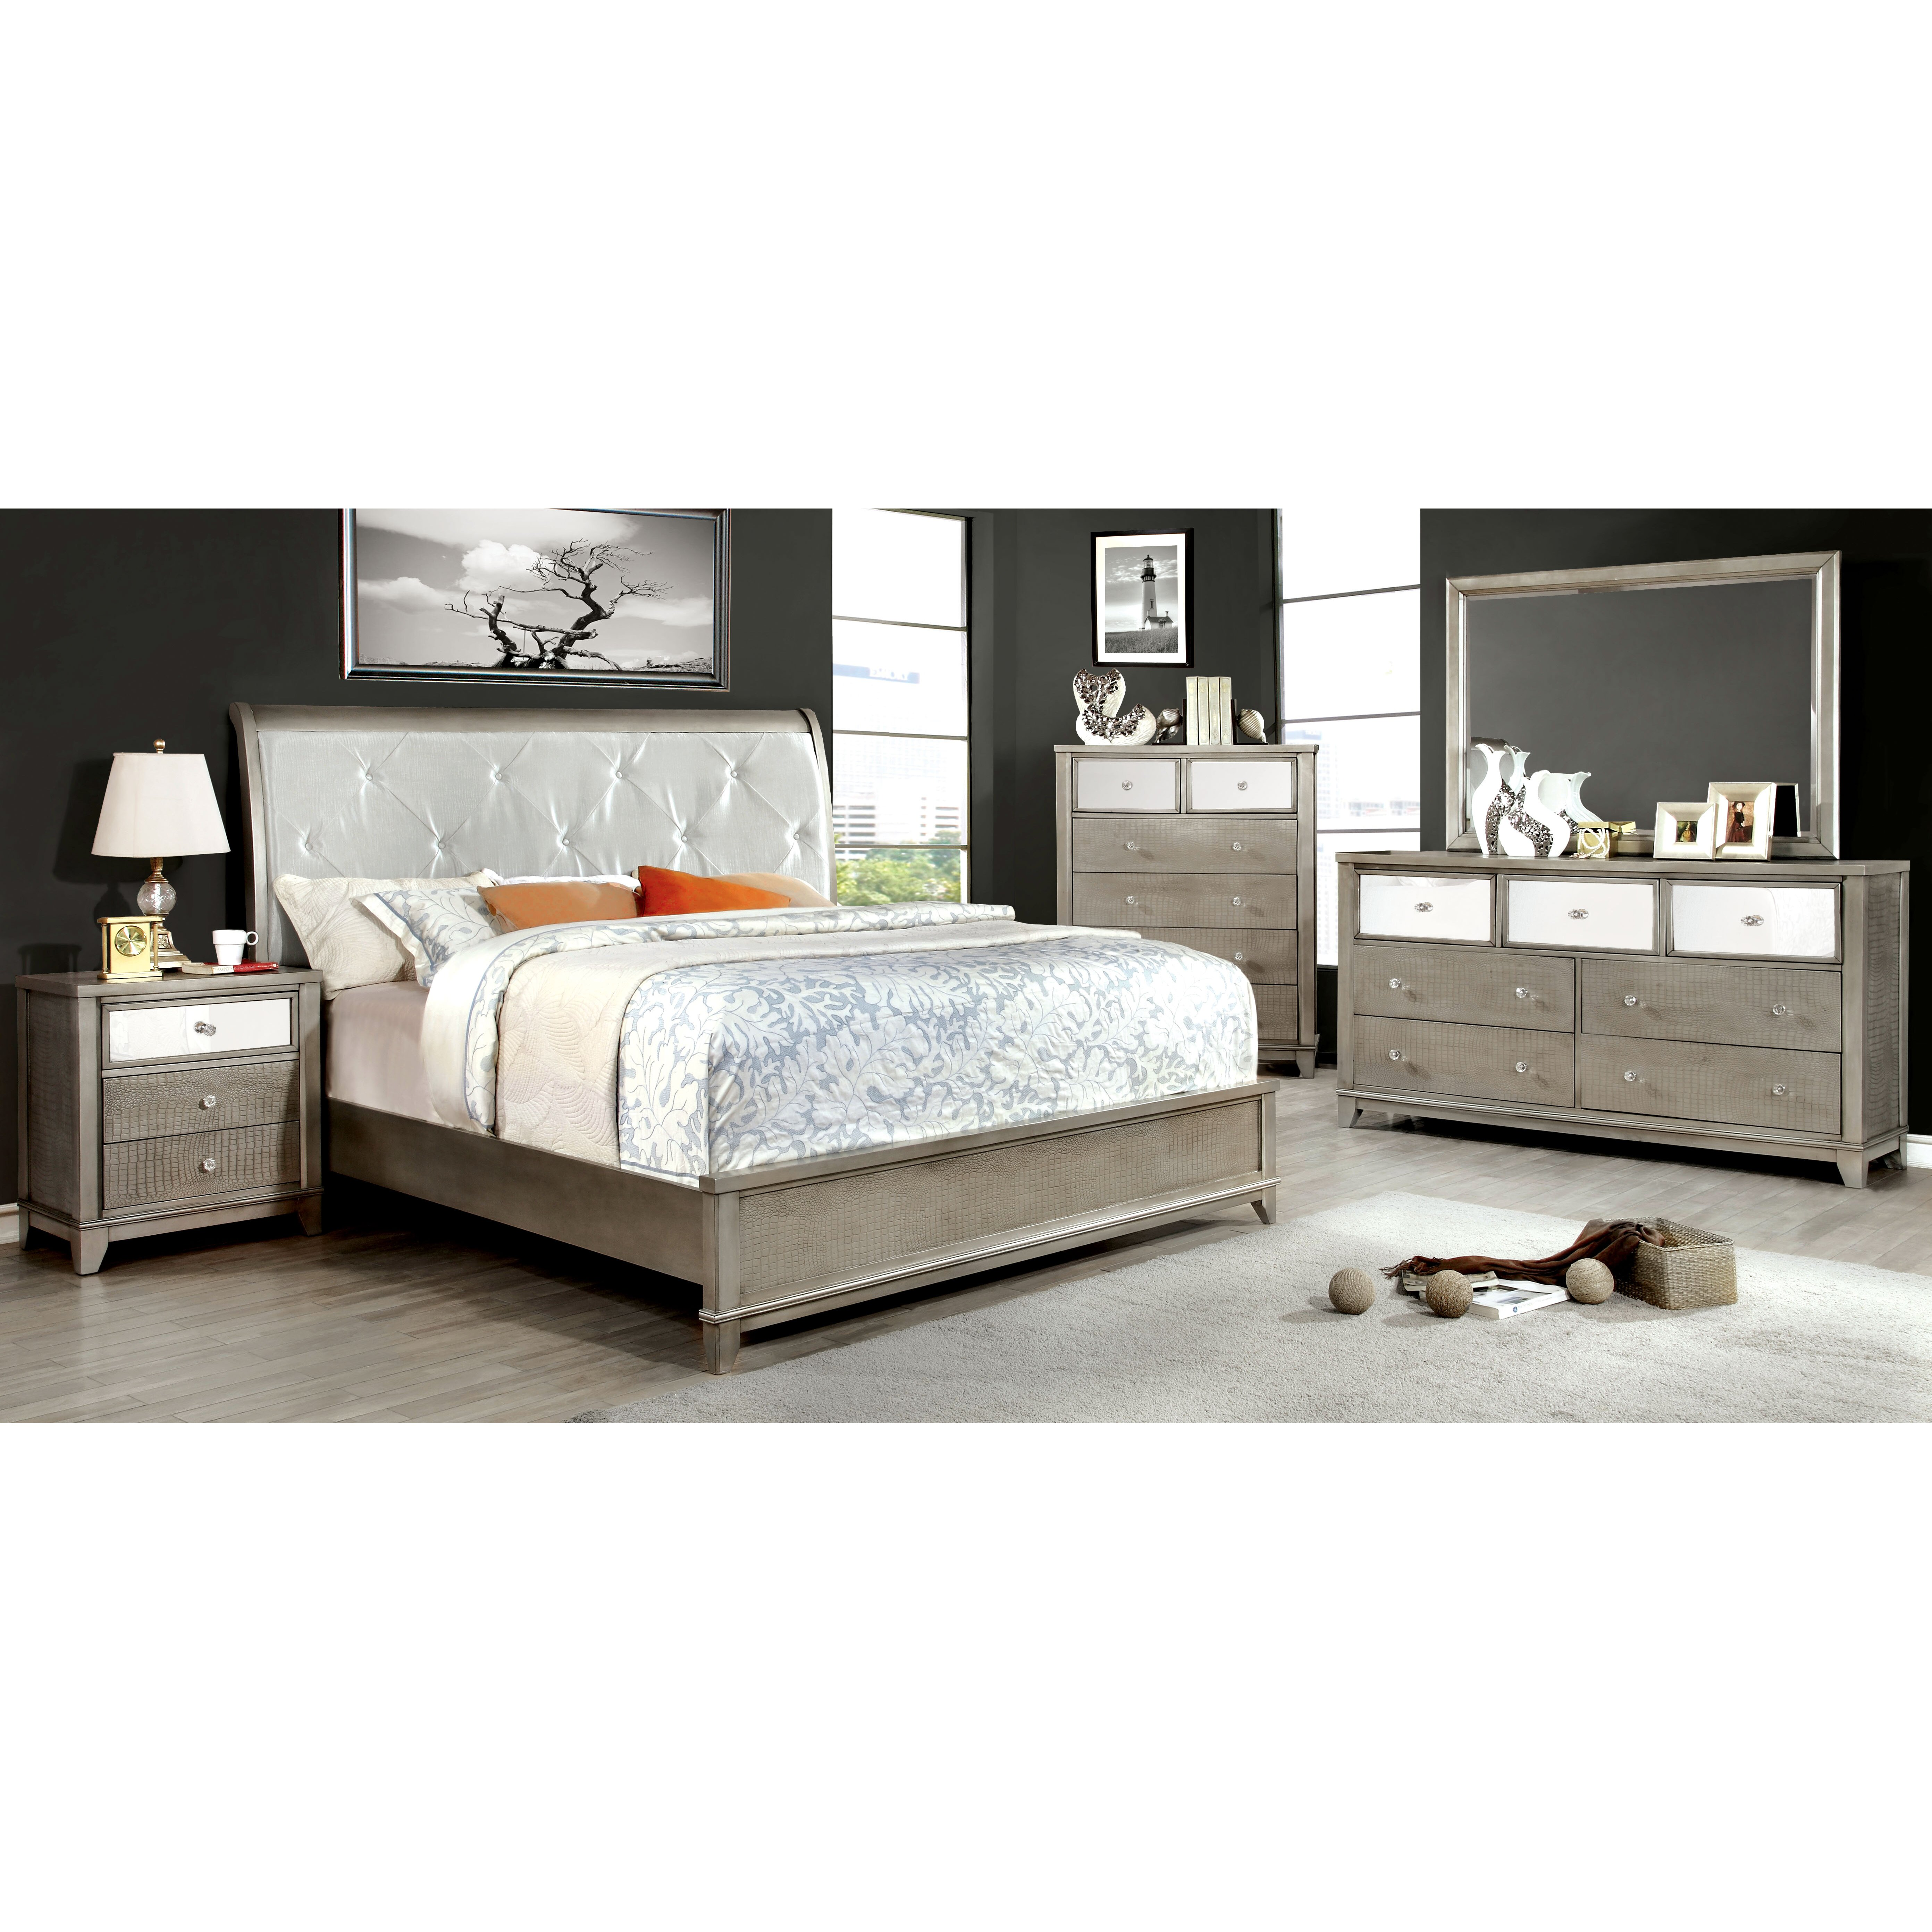 House Of Hampton Platform Customizable Bedroom Set Reviews Wayfair